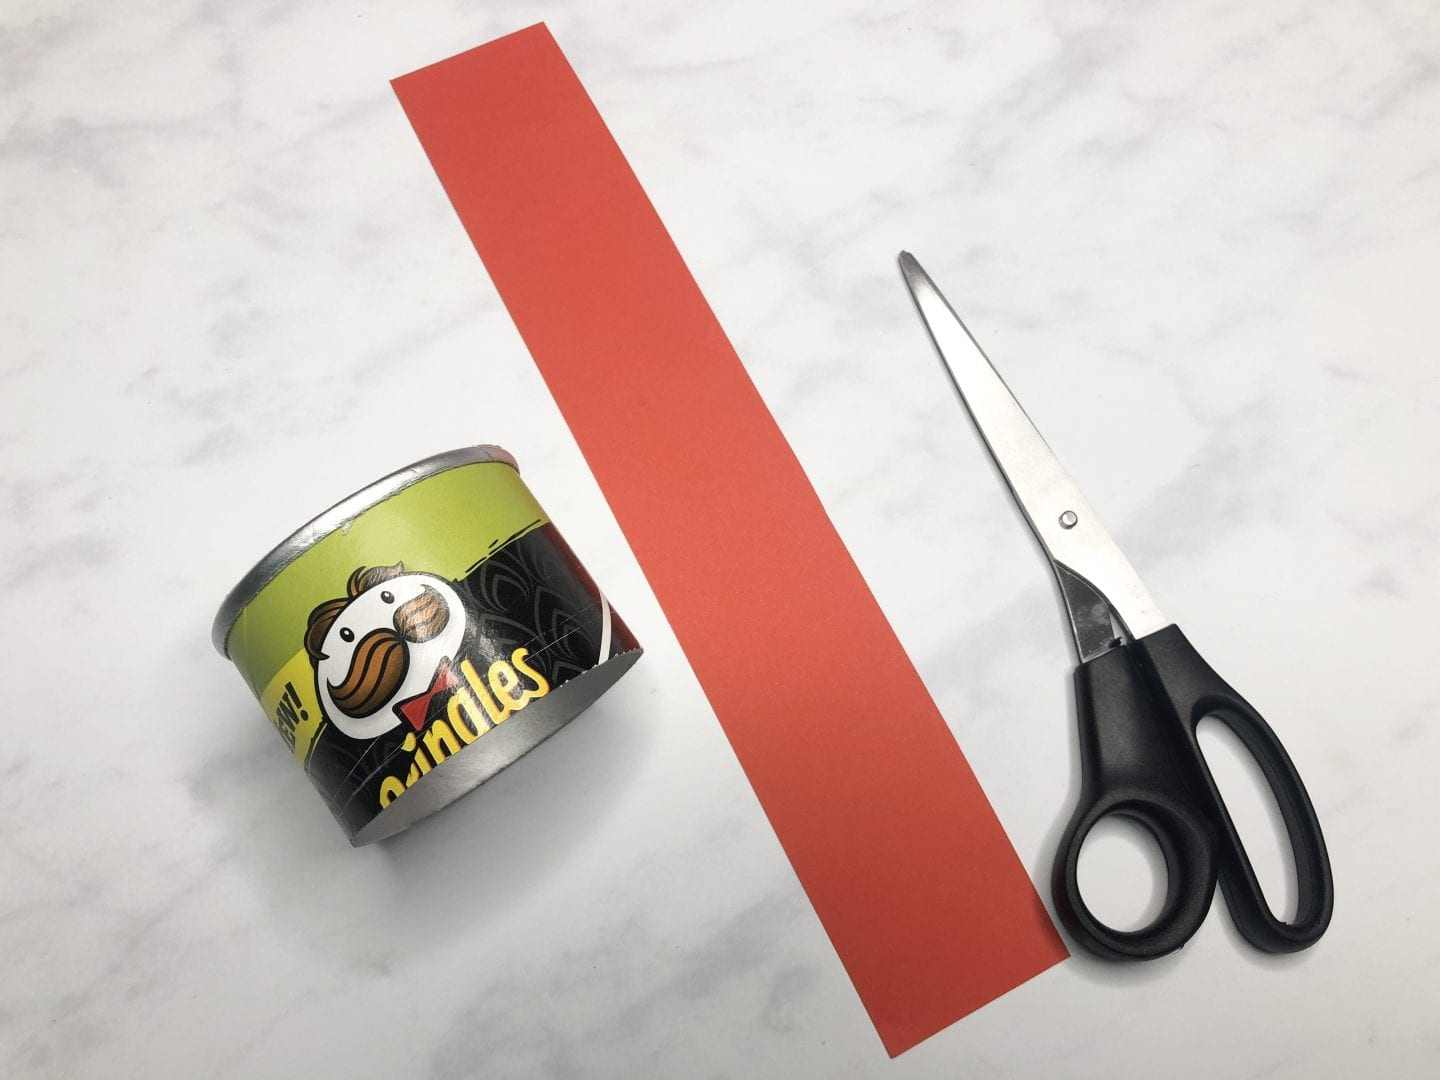 A section of the pringles tube cut with a length of red card